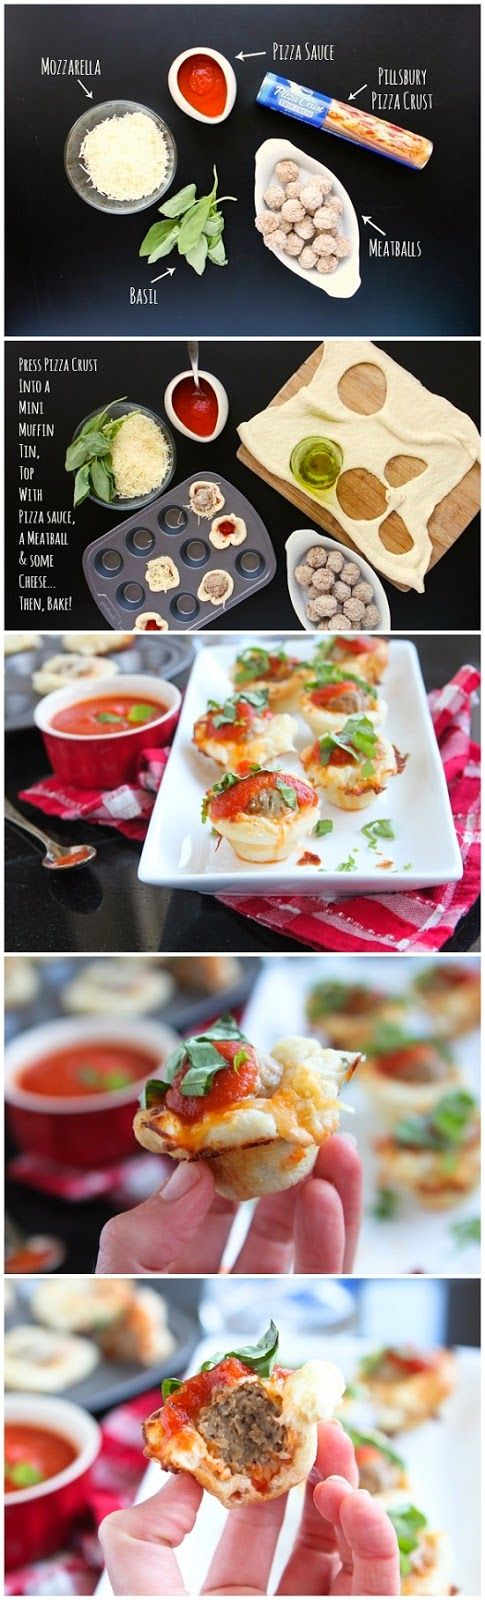 Full recipe: http://www.tablespoon.com/recipes/meatball-pizza-cups/2e6b541a-9ae0-4f18-8dfe-9e0a2458b224